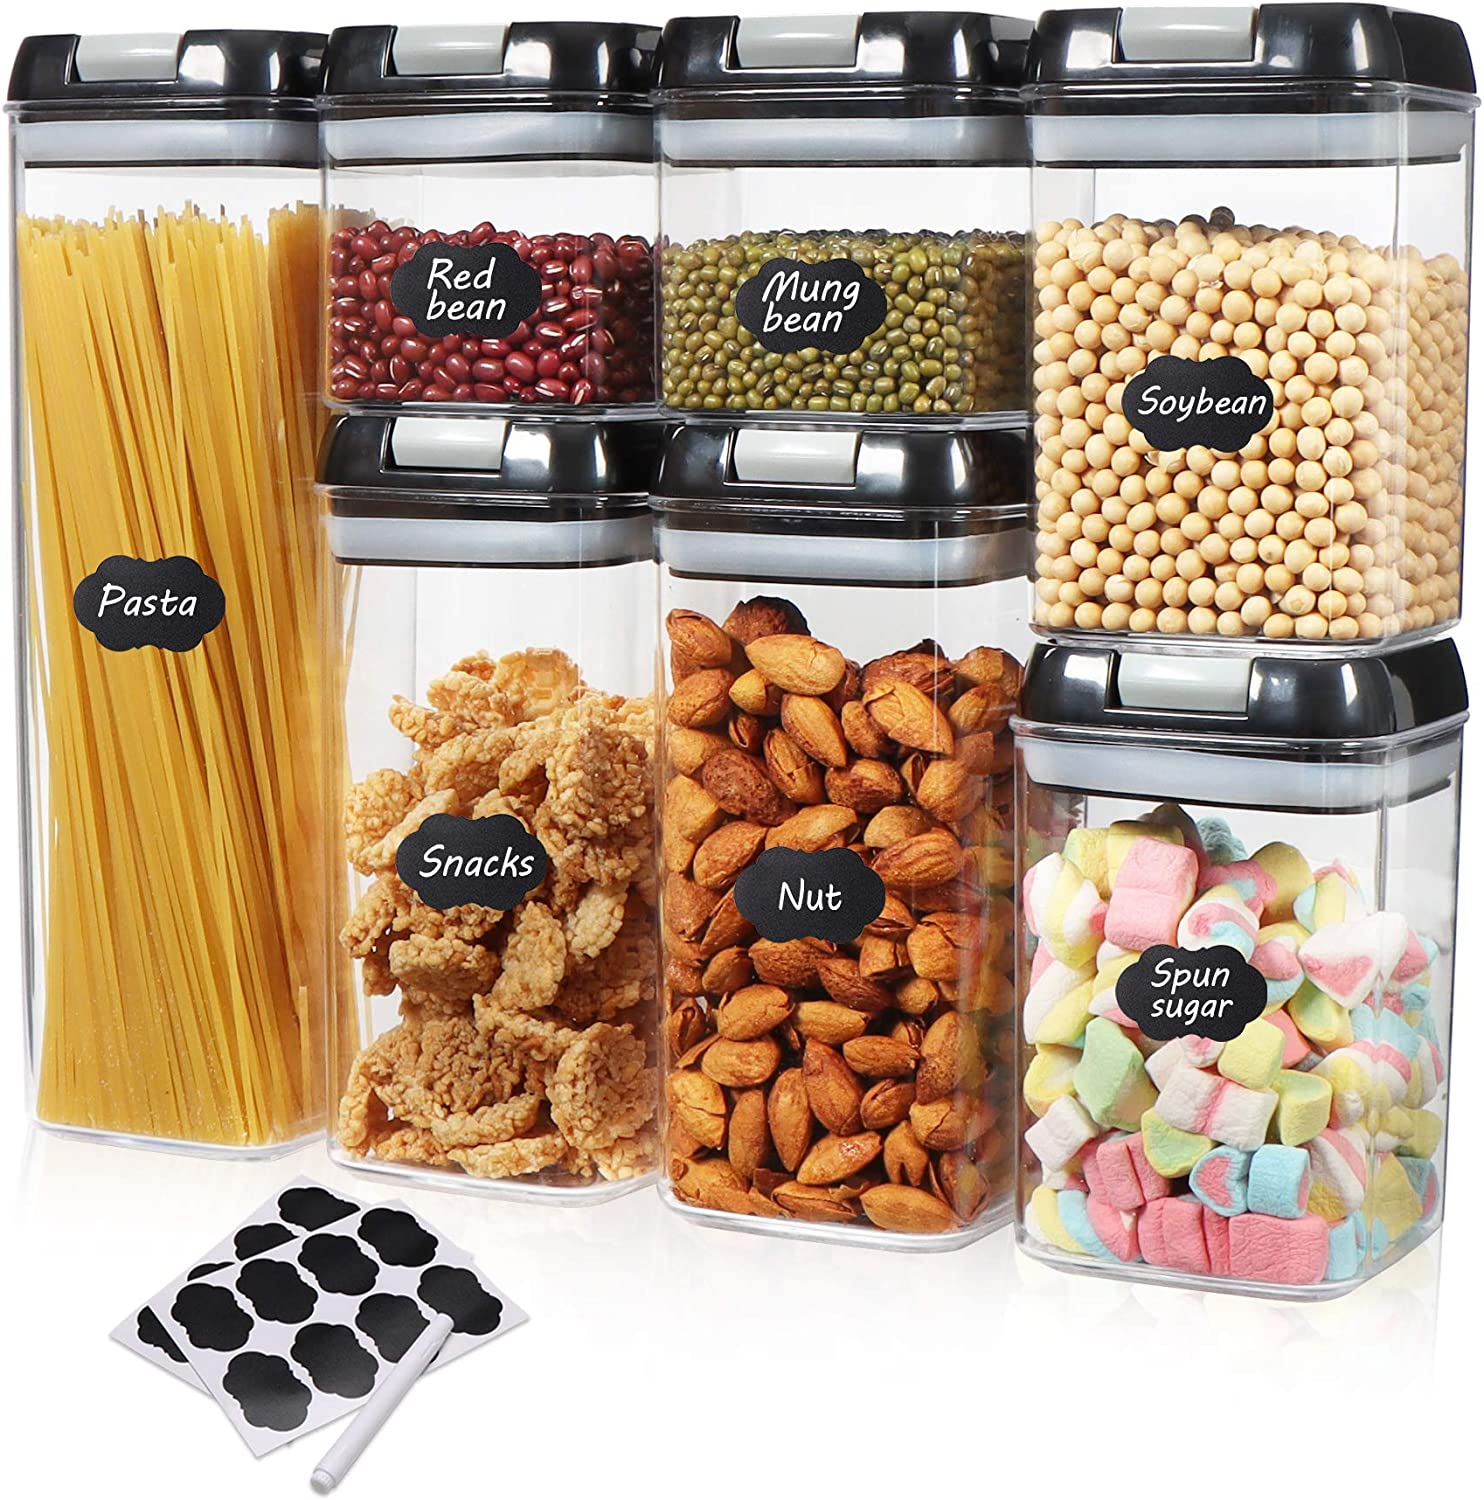 Airtight Food Storage Container, 7 PC Kits-Labeling and Marking-Kitchen and Food Storage Containers-BPA-free, Transparent Plastic Jars for Flour Grains and Plastic Jars with Modified Lid